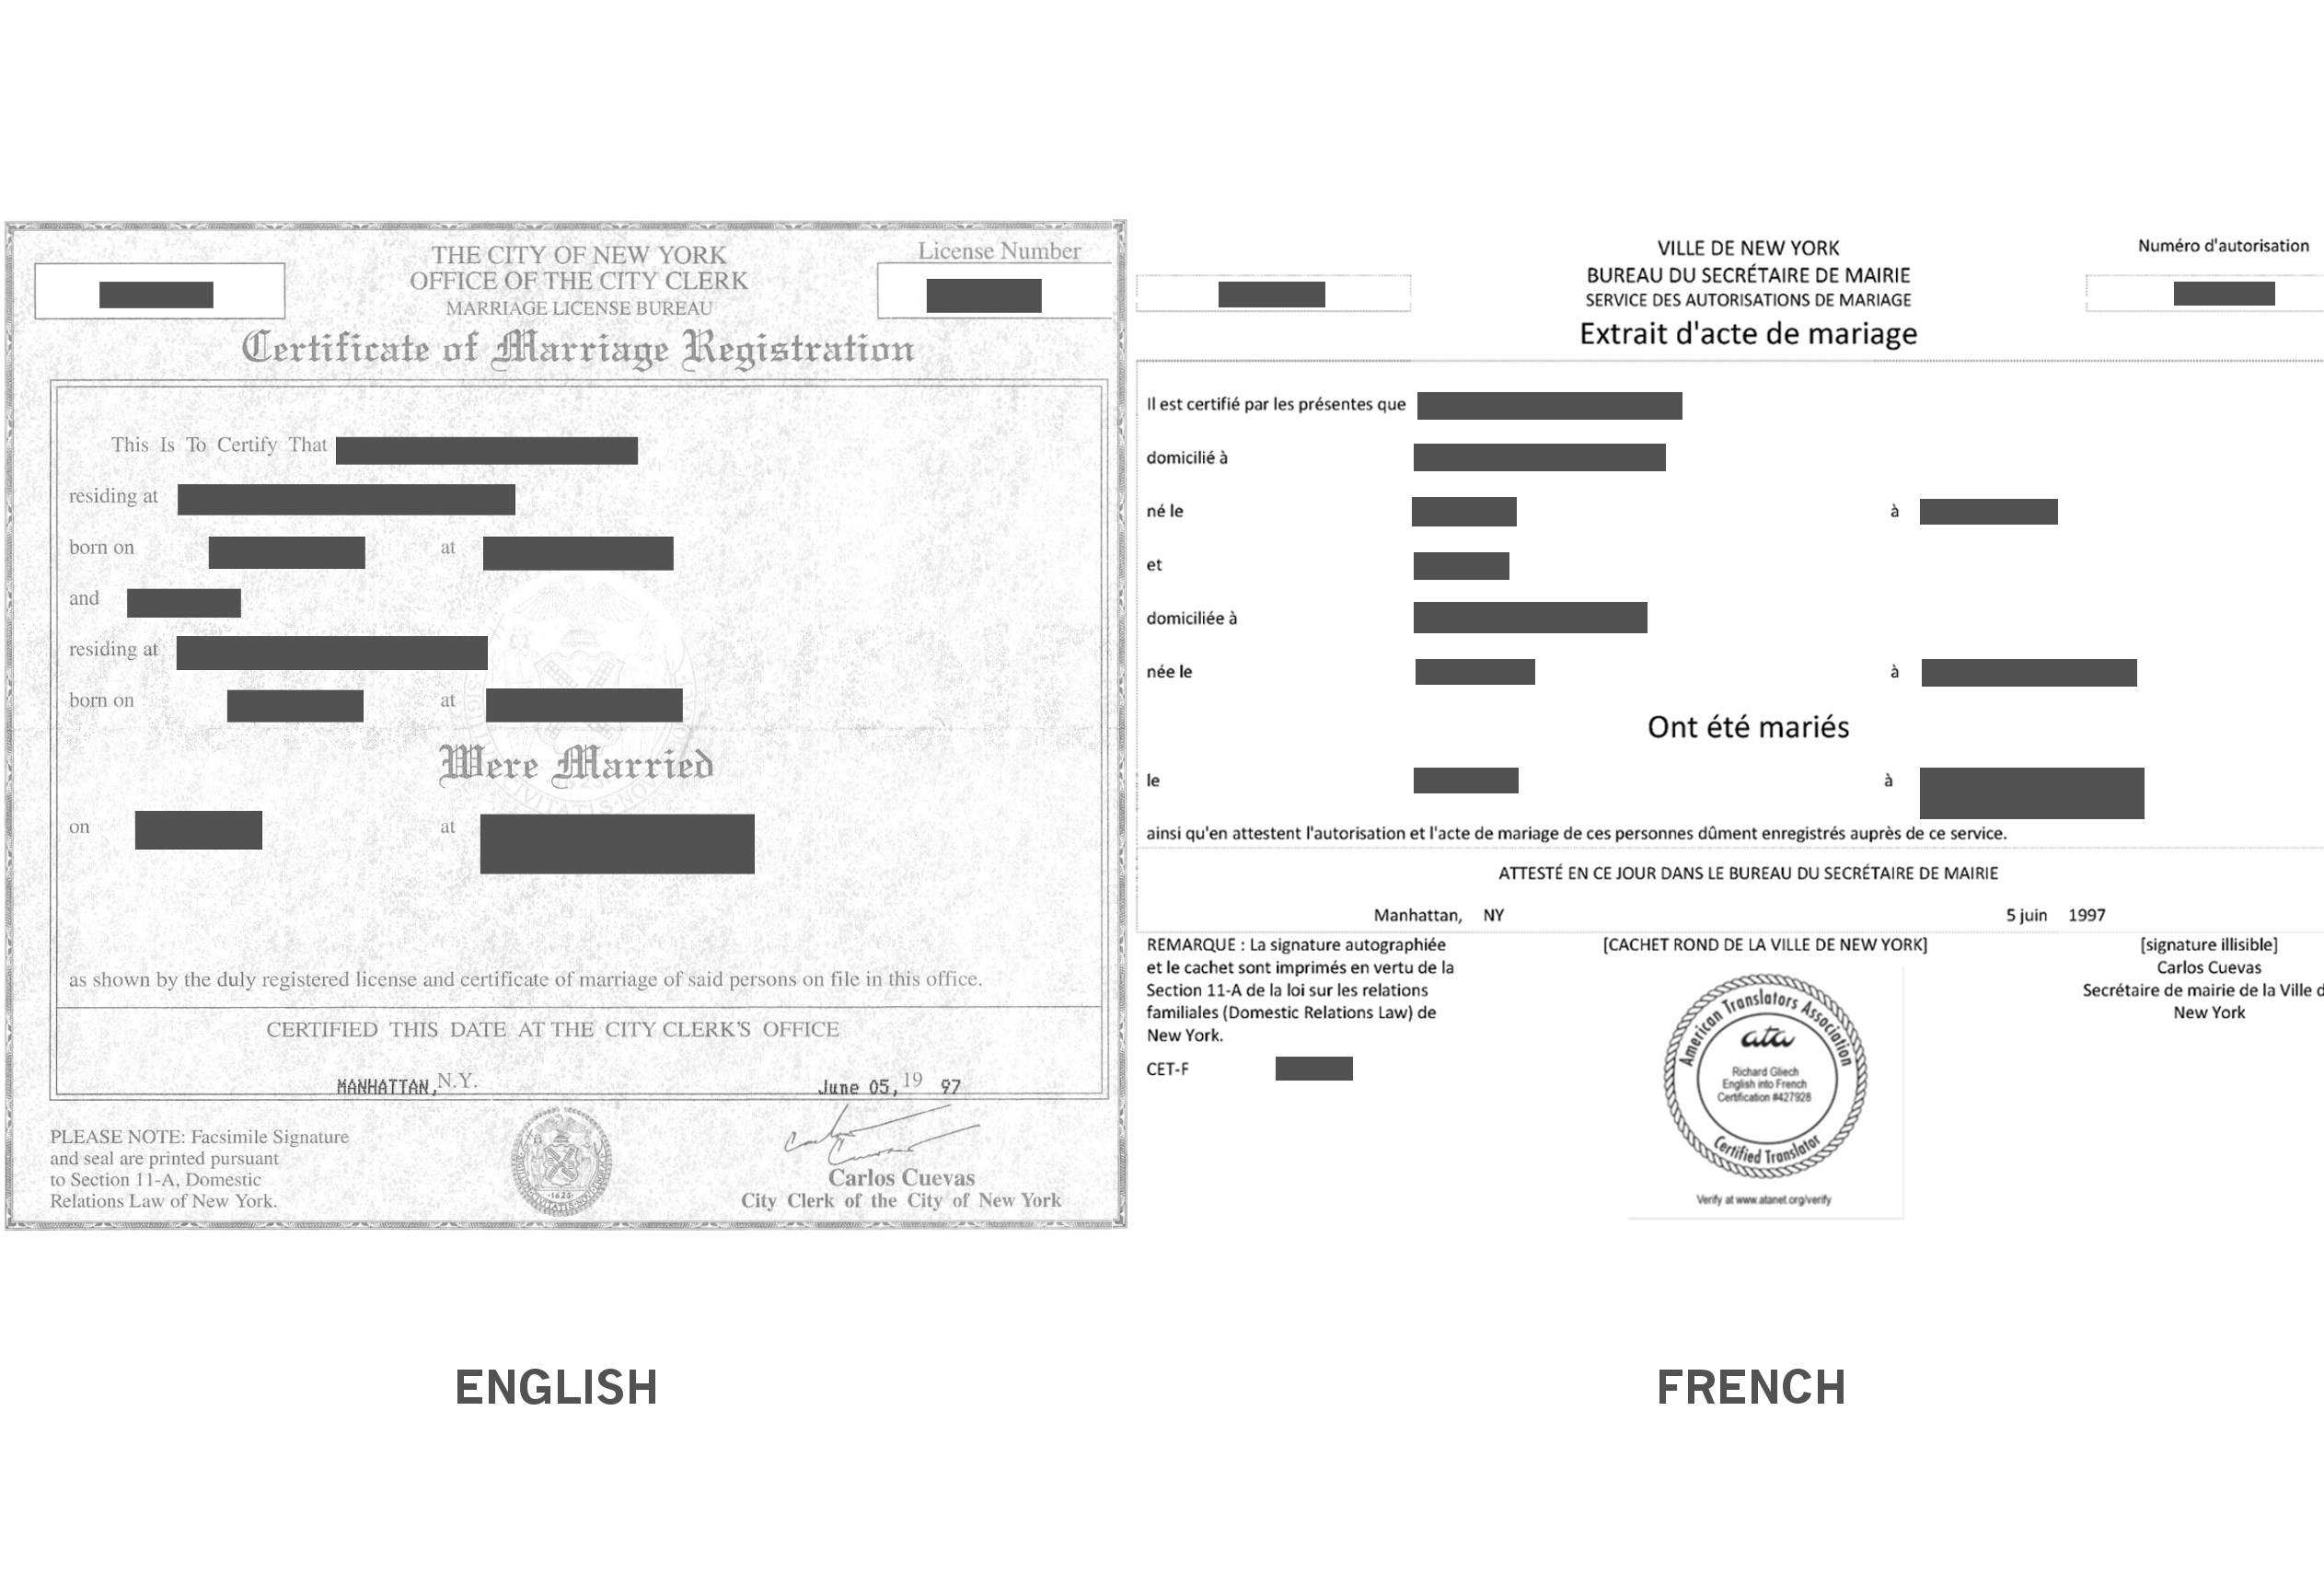 Free invoice template example of gaon panchayat certificate best example of gaon panchayat certificate best of claim for mons october new example gaon panchayat certificate new puter certificate format find and download thecheapjerseys Images